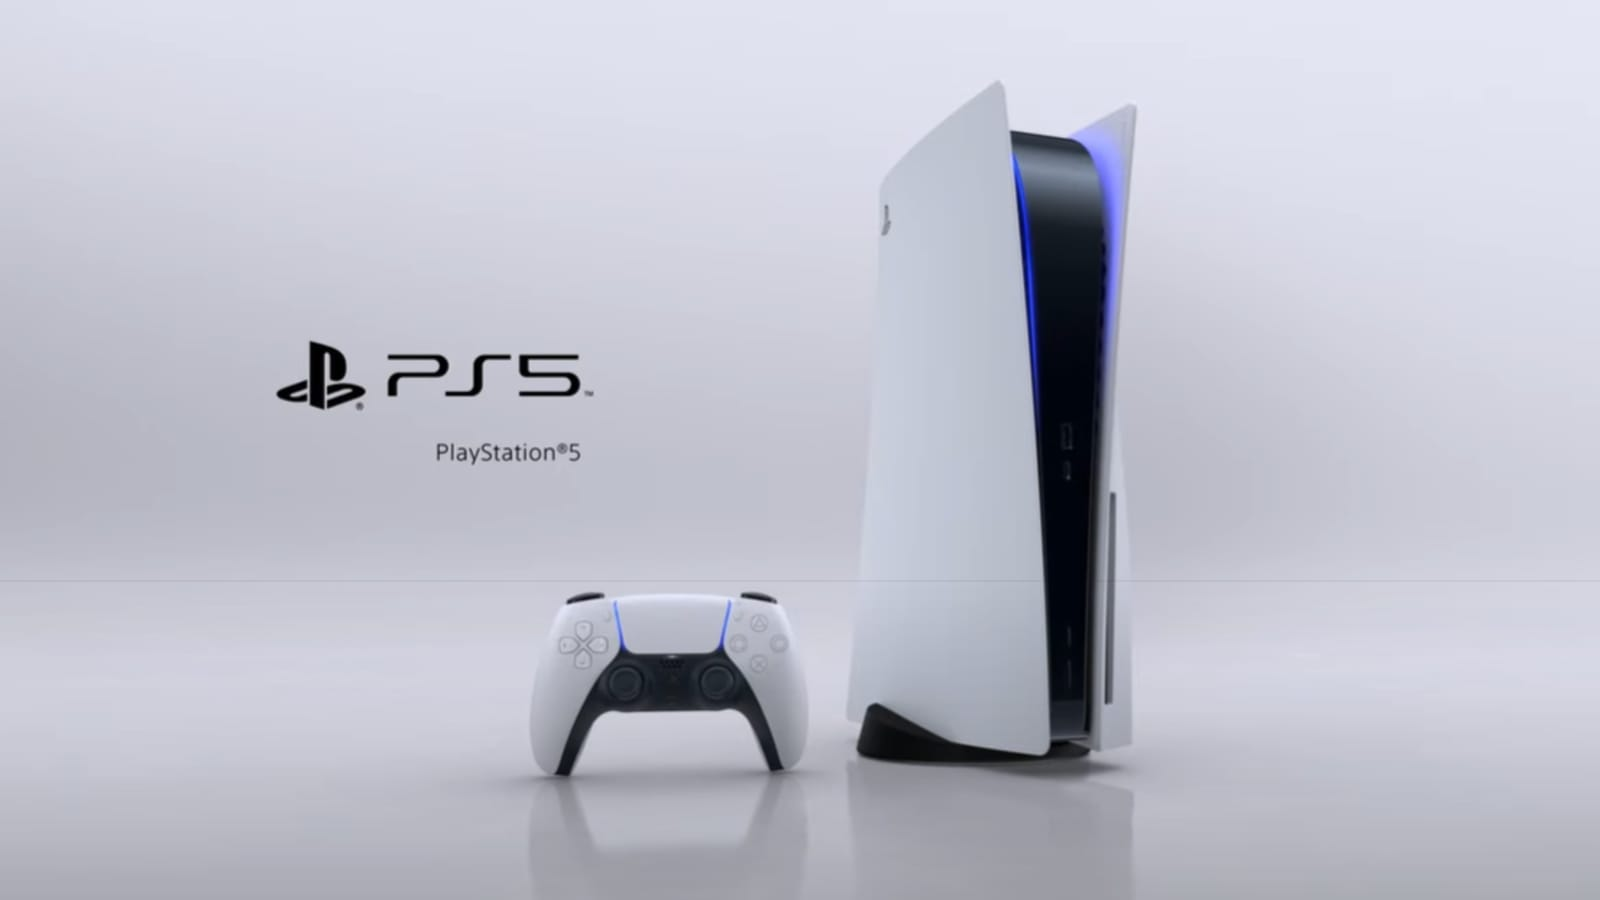 sony playstation ps5 console